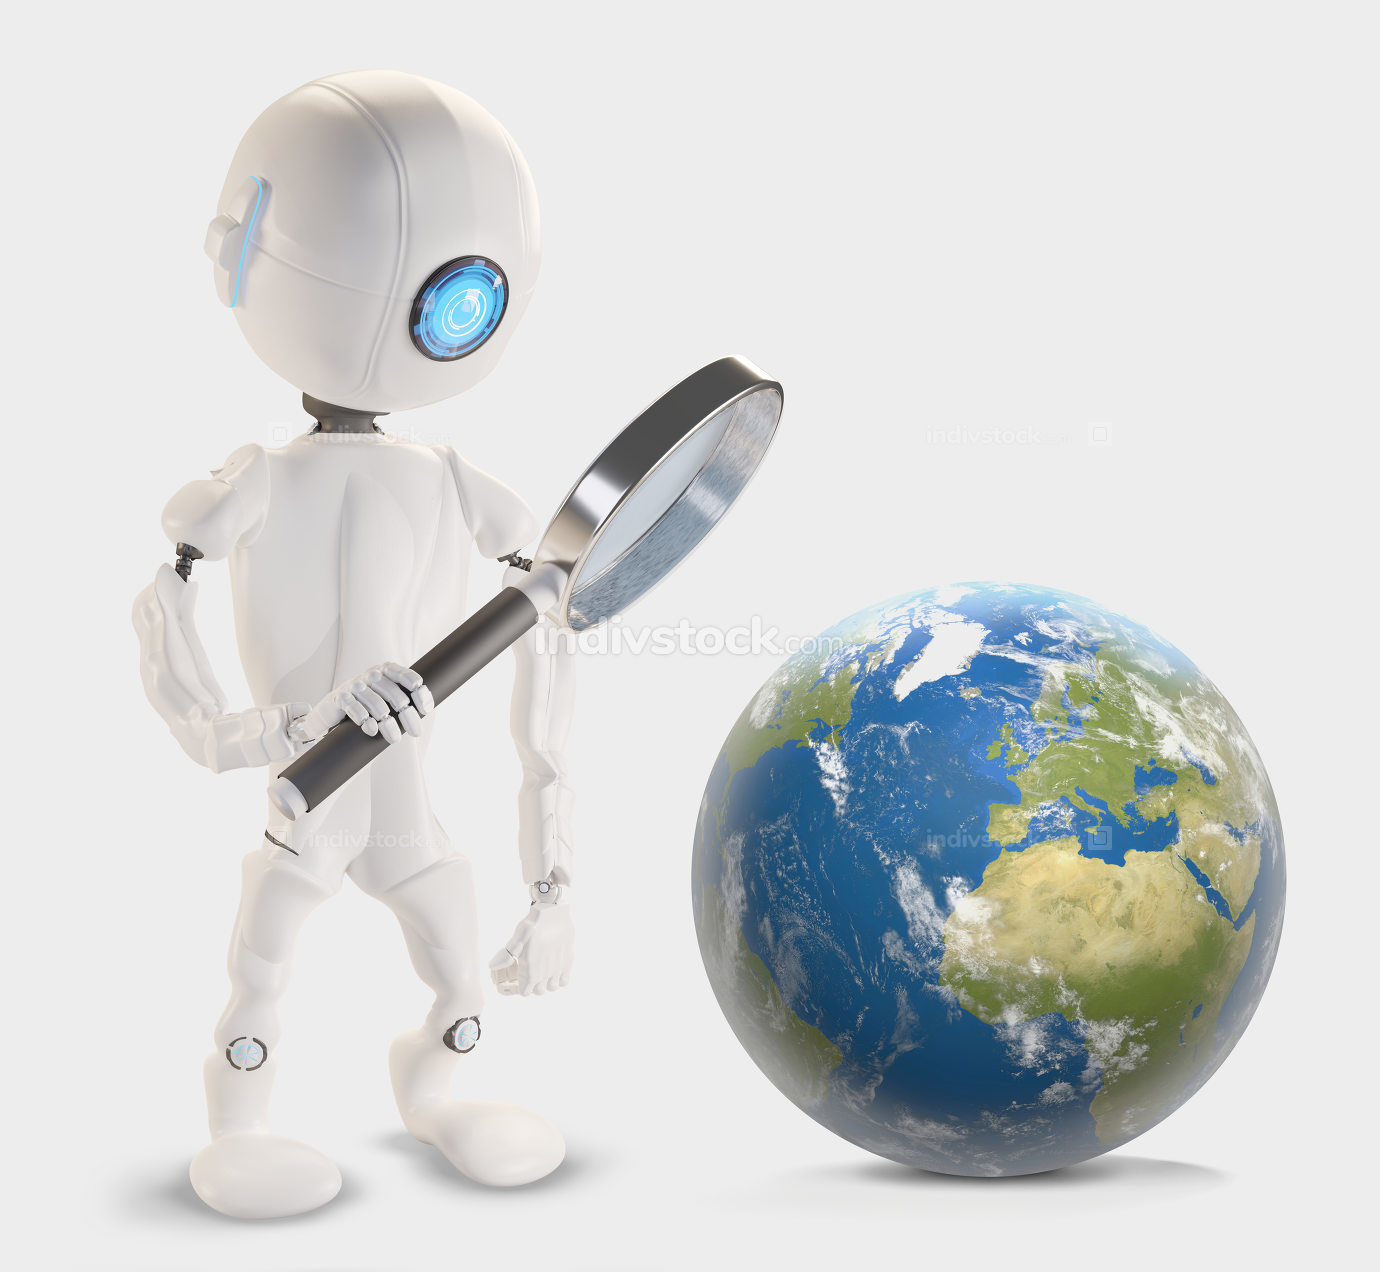 Robot with magnifying glass and planet earth 3d-illustration. El